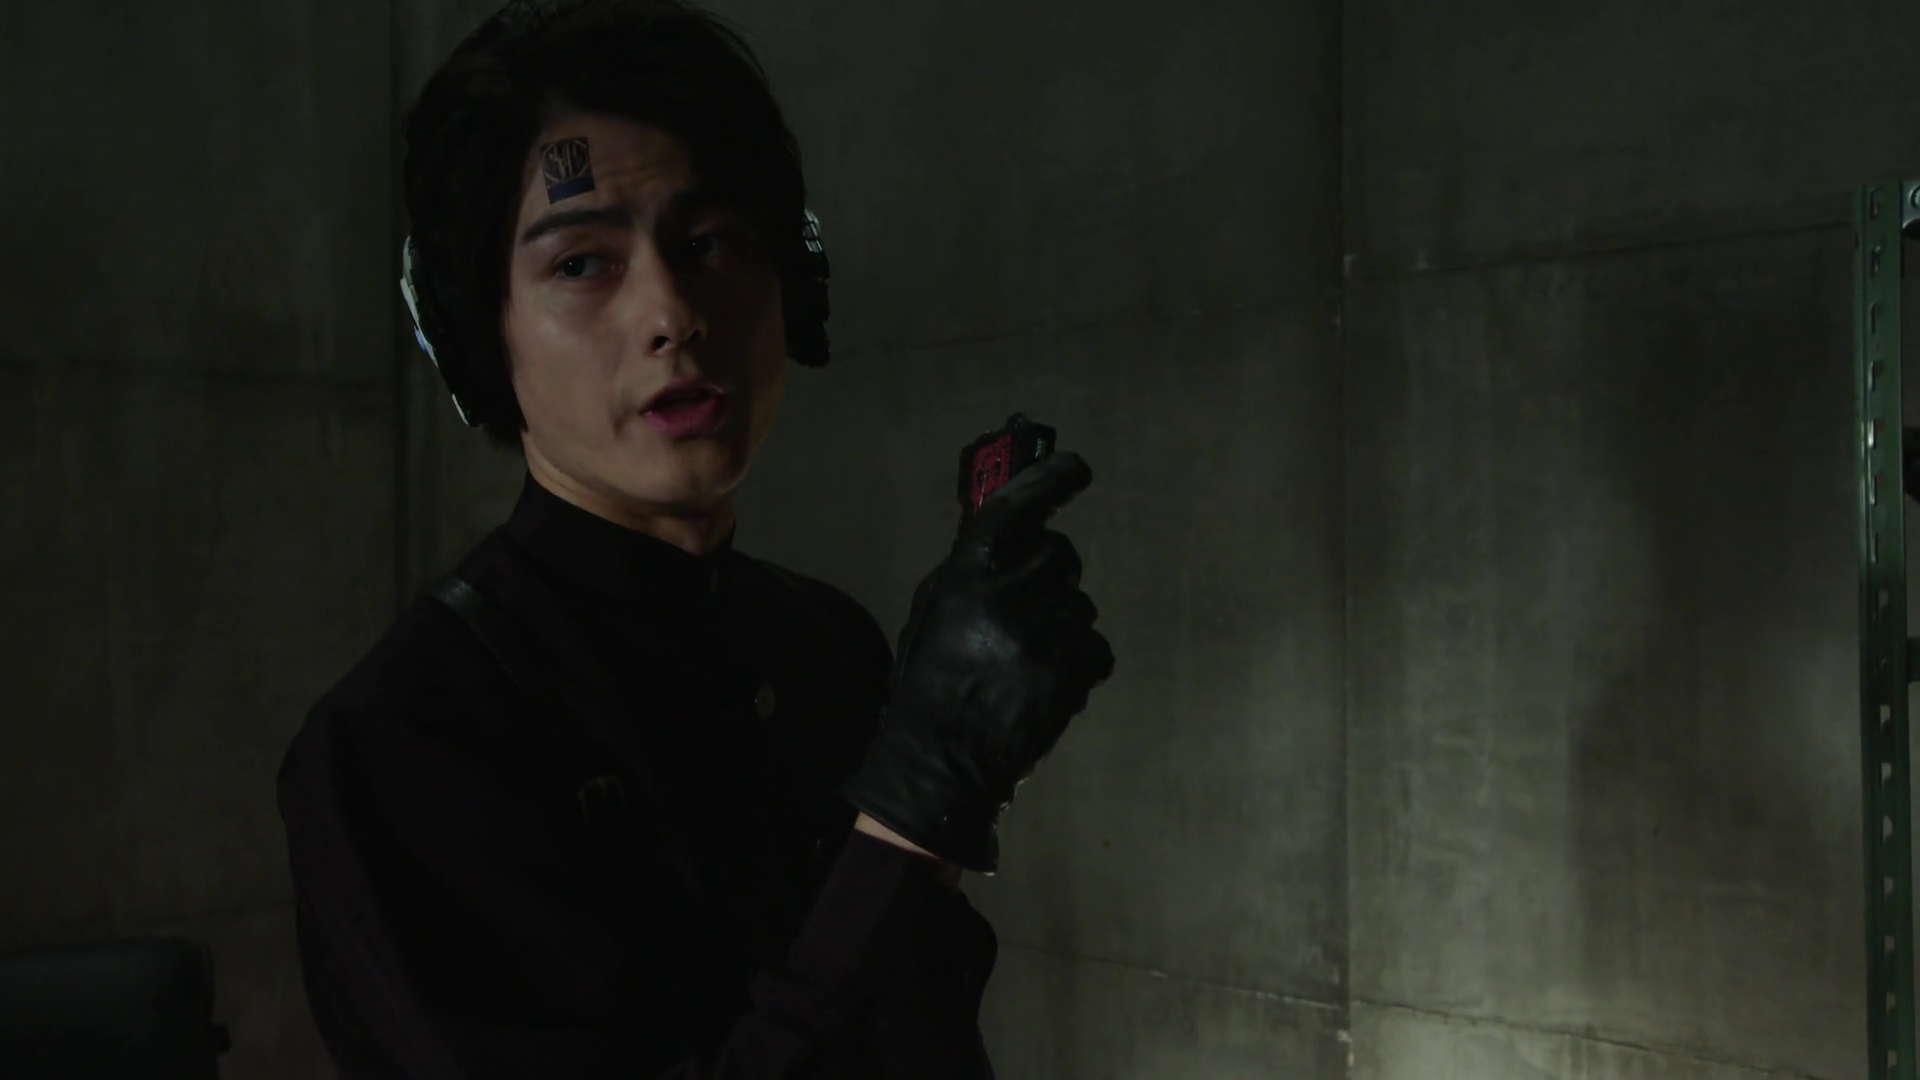 Kamen Rider Zero One Episode 12 Recap